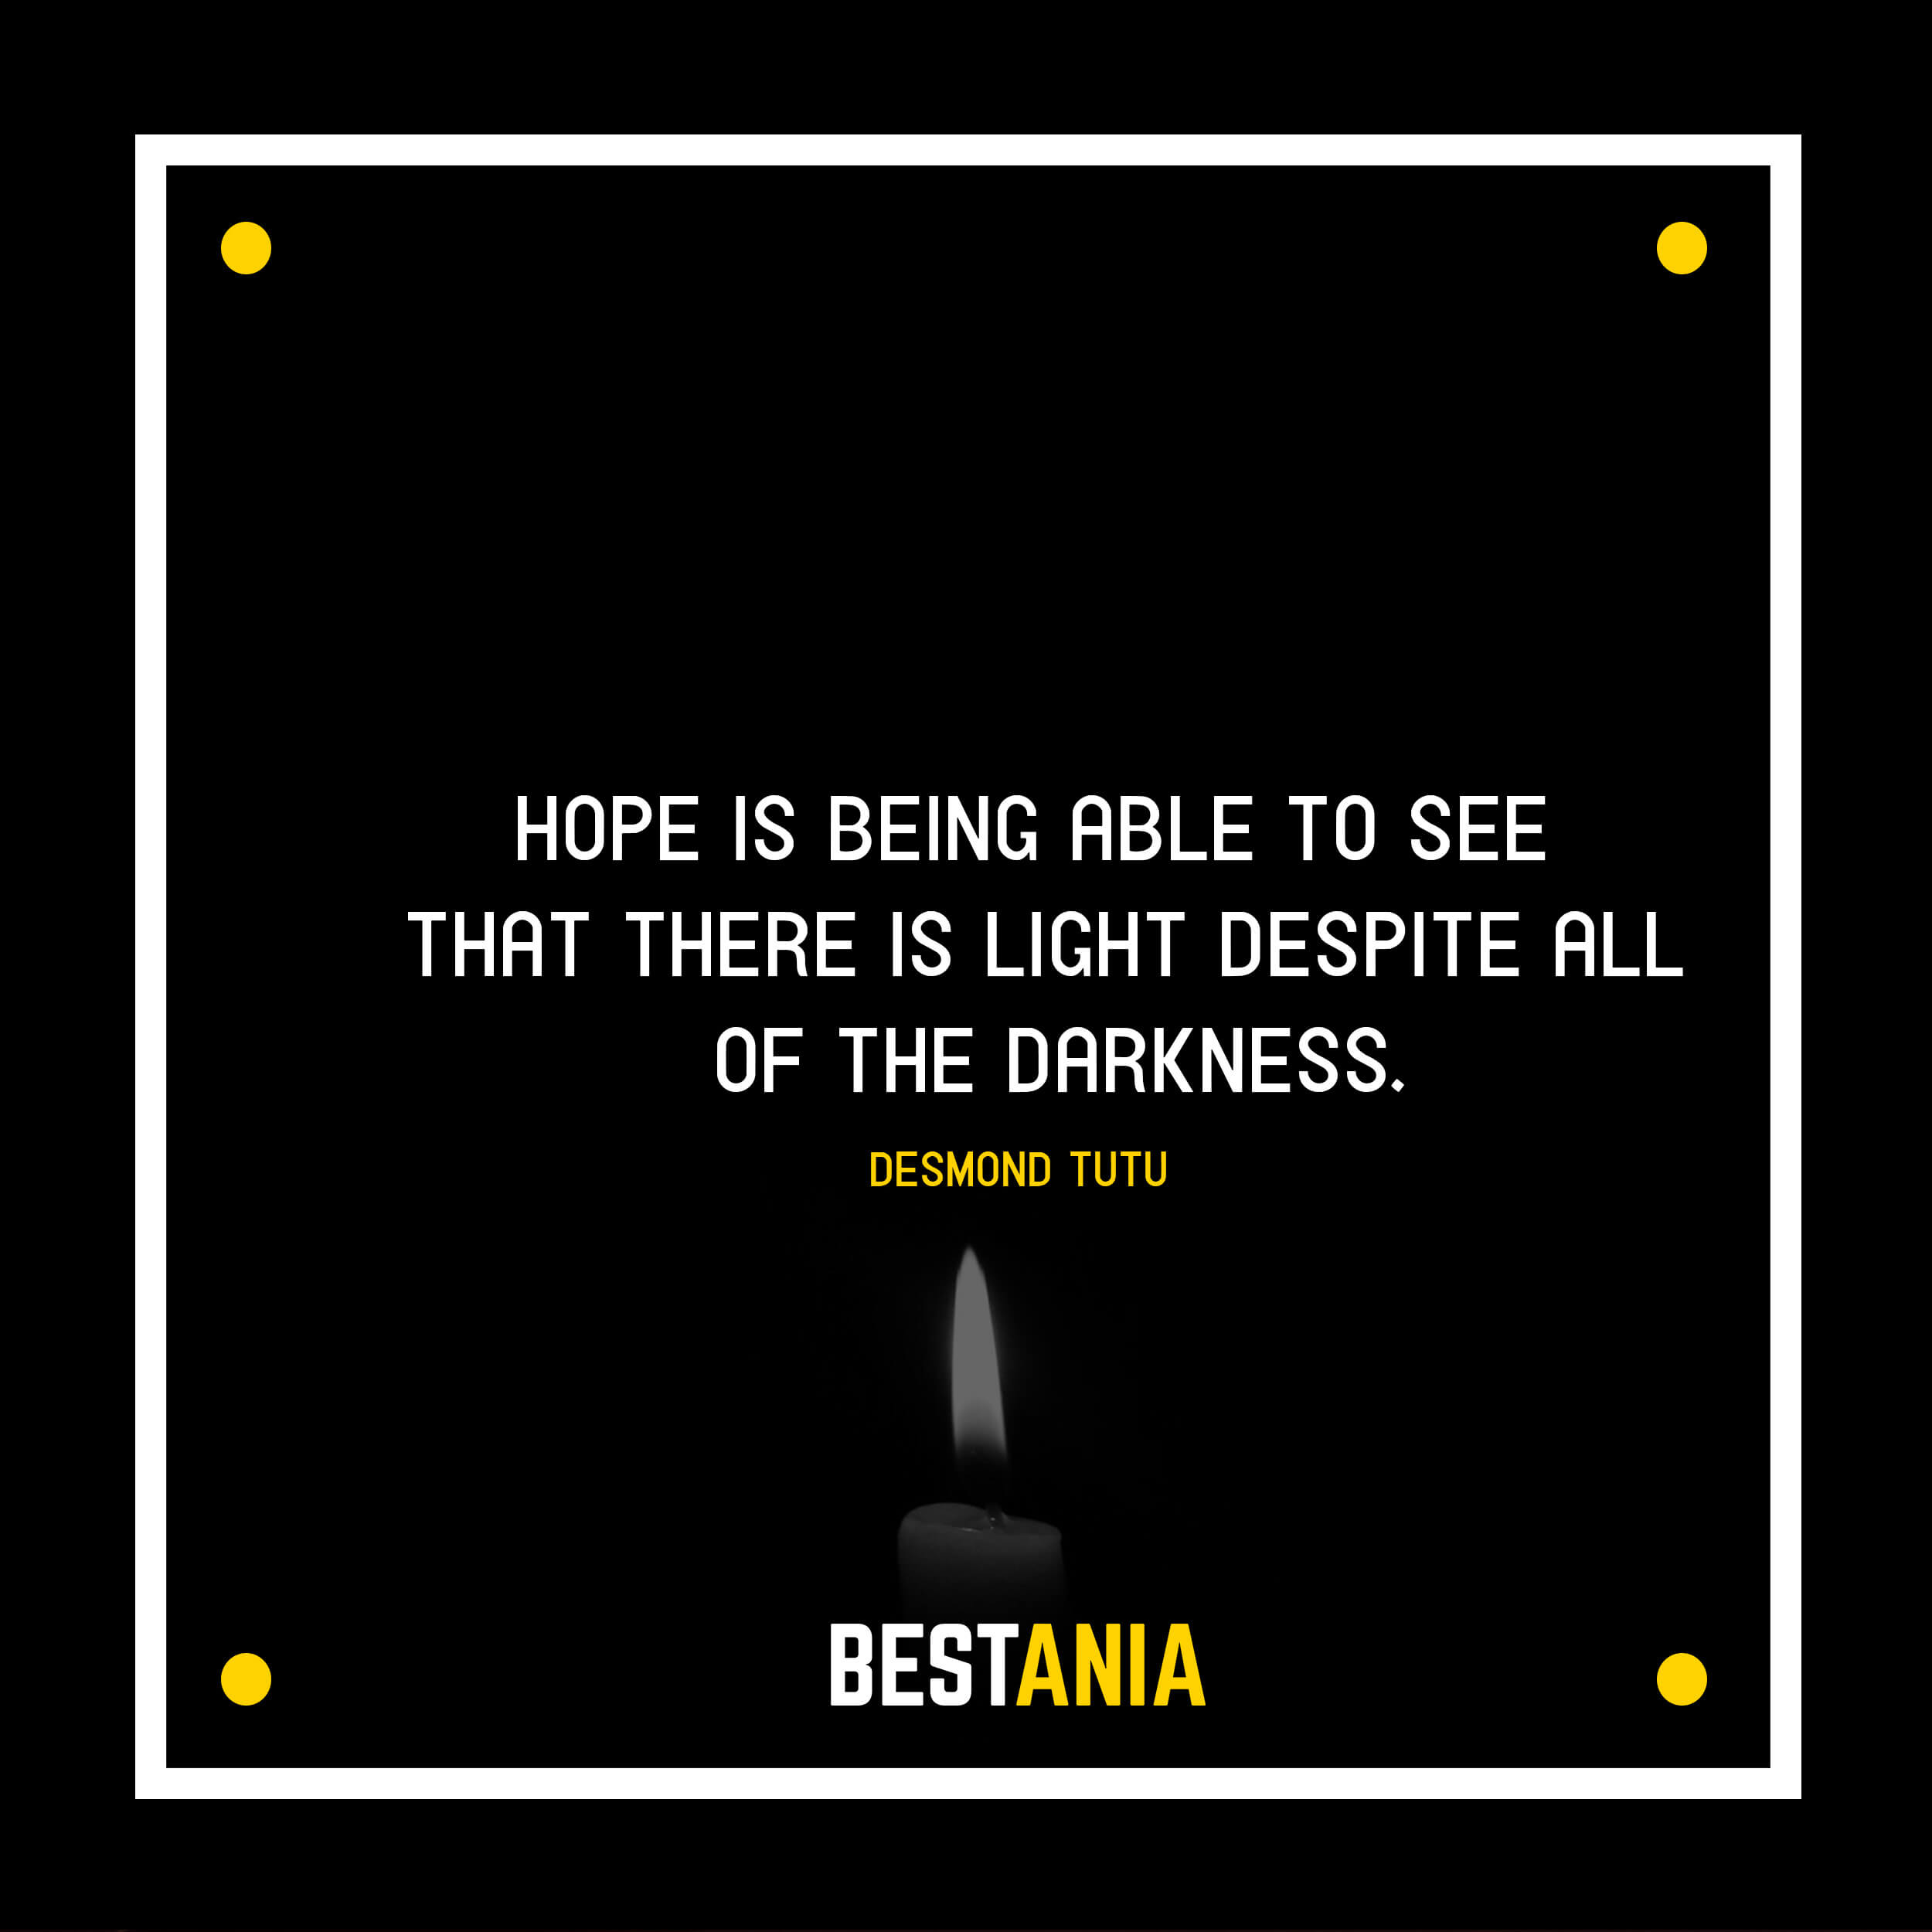 """HOPE IS BEING ABLE TO SEE THAT THERE IS LIGHT DESPITE ALL OF THE DARKNESS."" DESMOND TUTU"